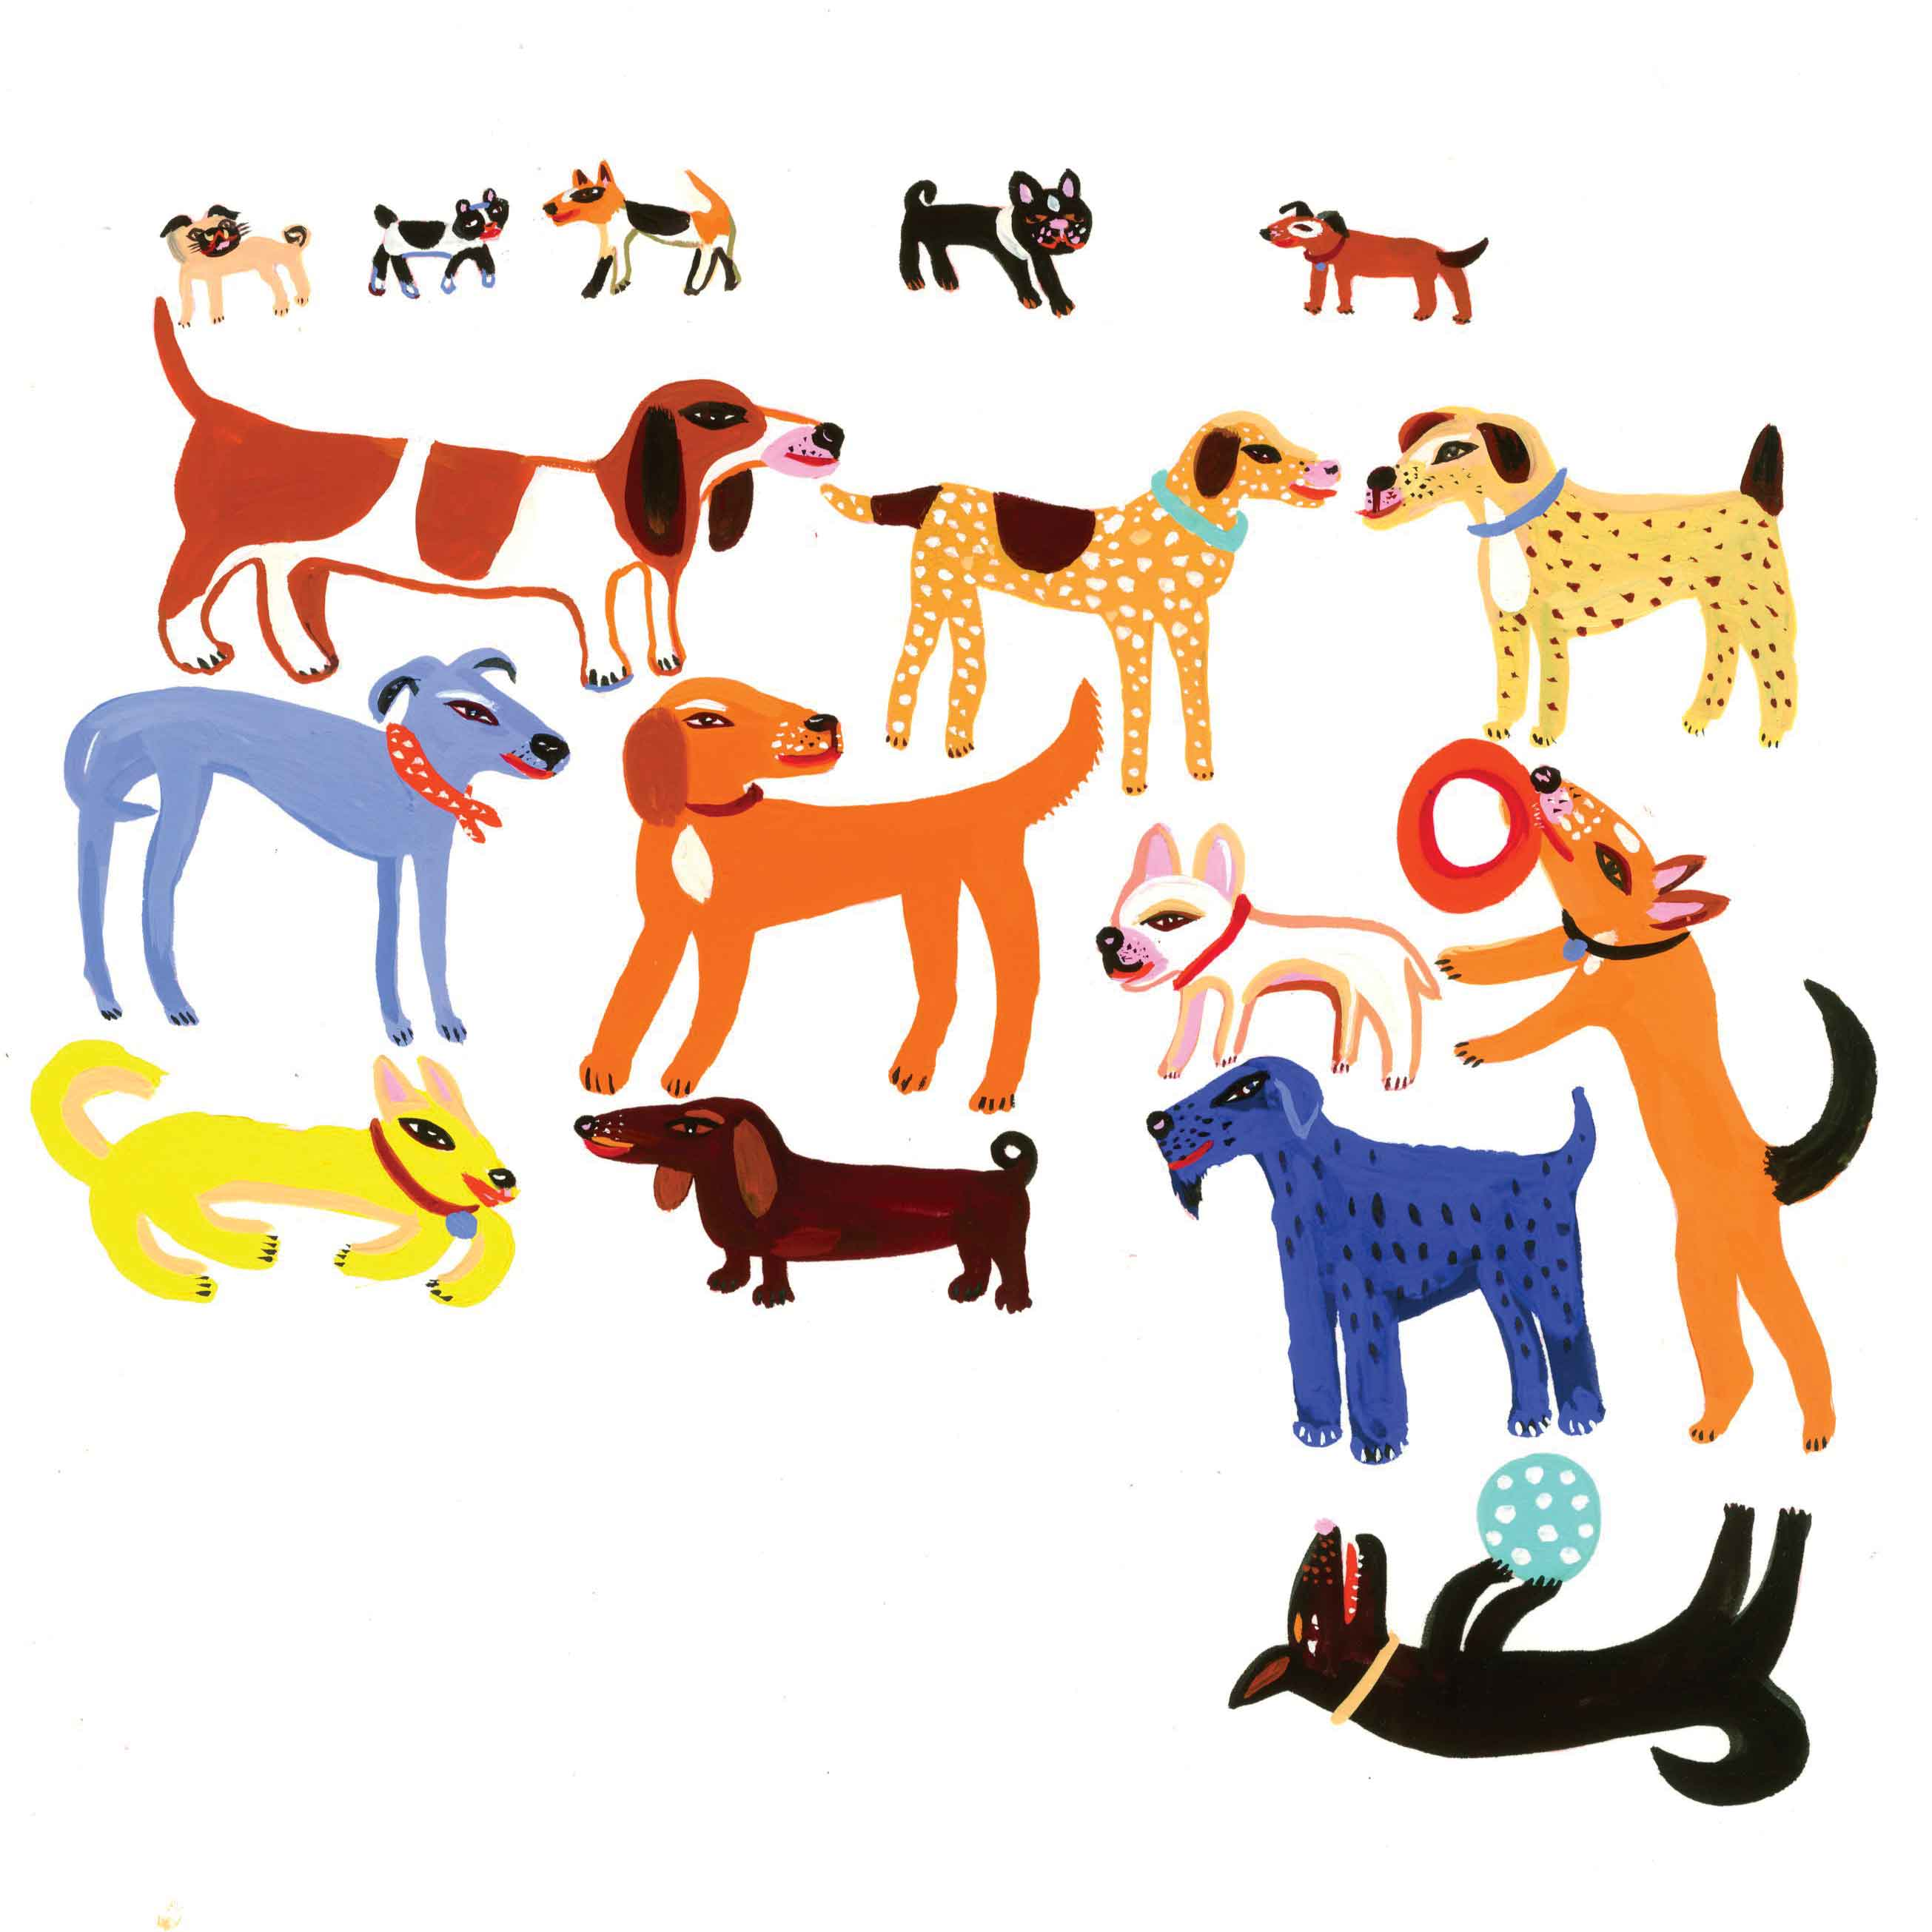 Dogs by Christopher Corr, Art Greeting Card, Gouache on Paper, Lots of dogs